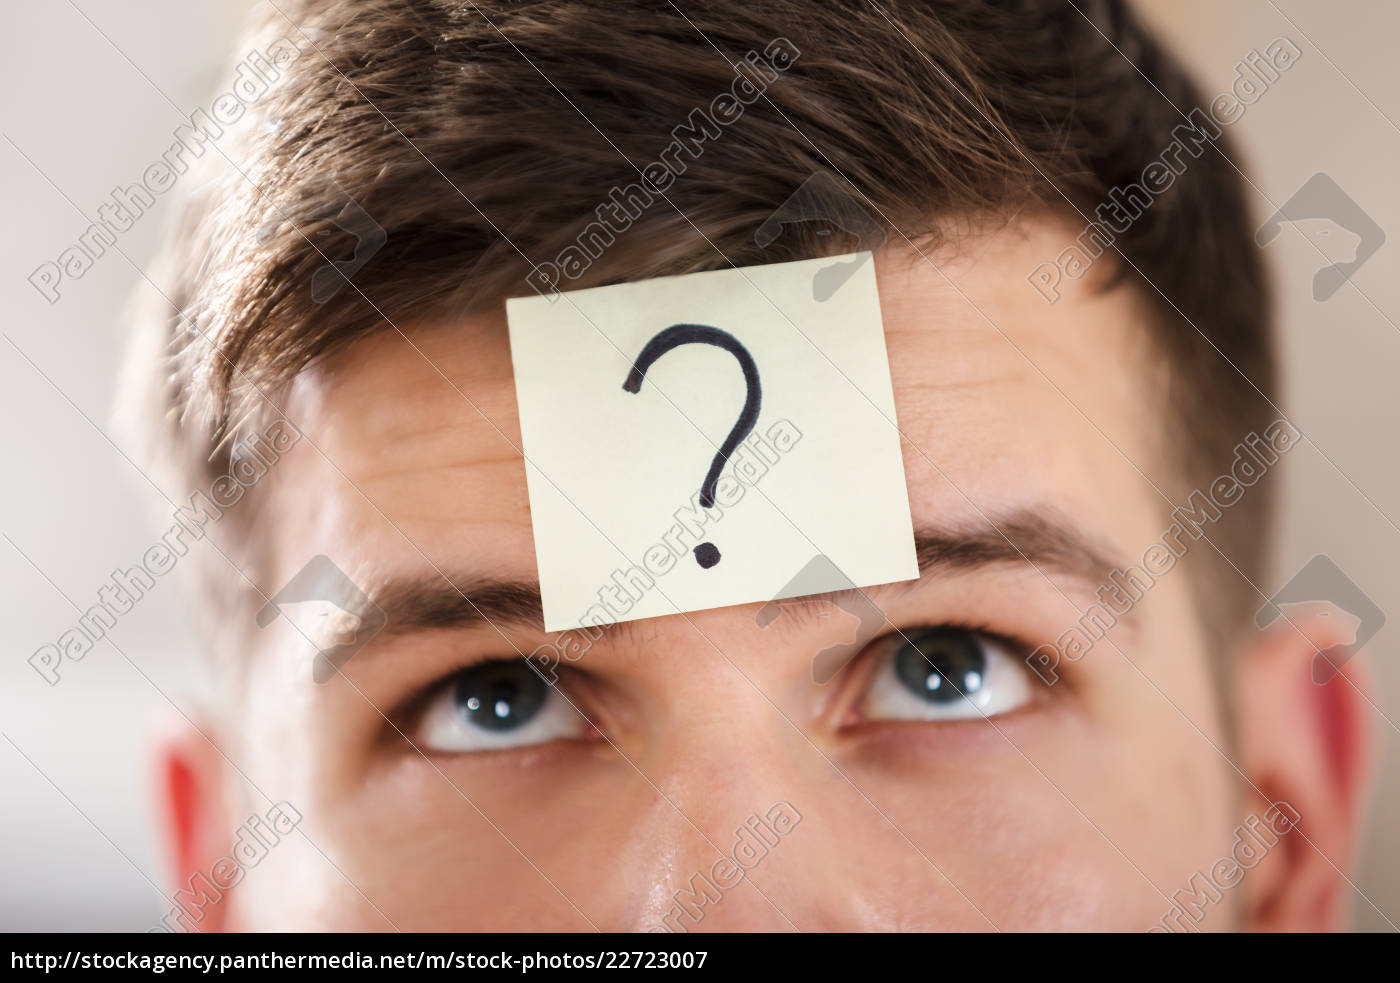 businessperson's, forehead, with, question, mark, on - 22723007